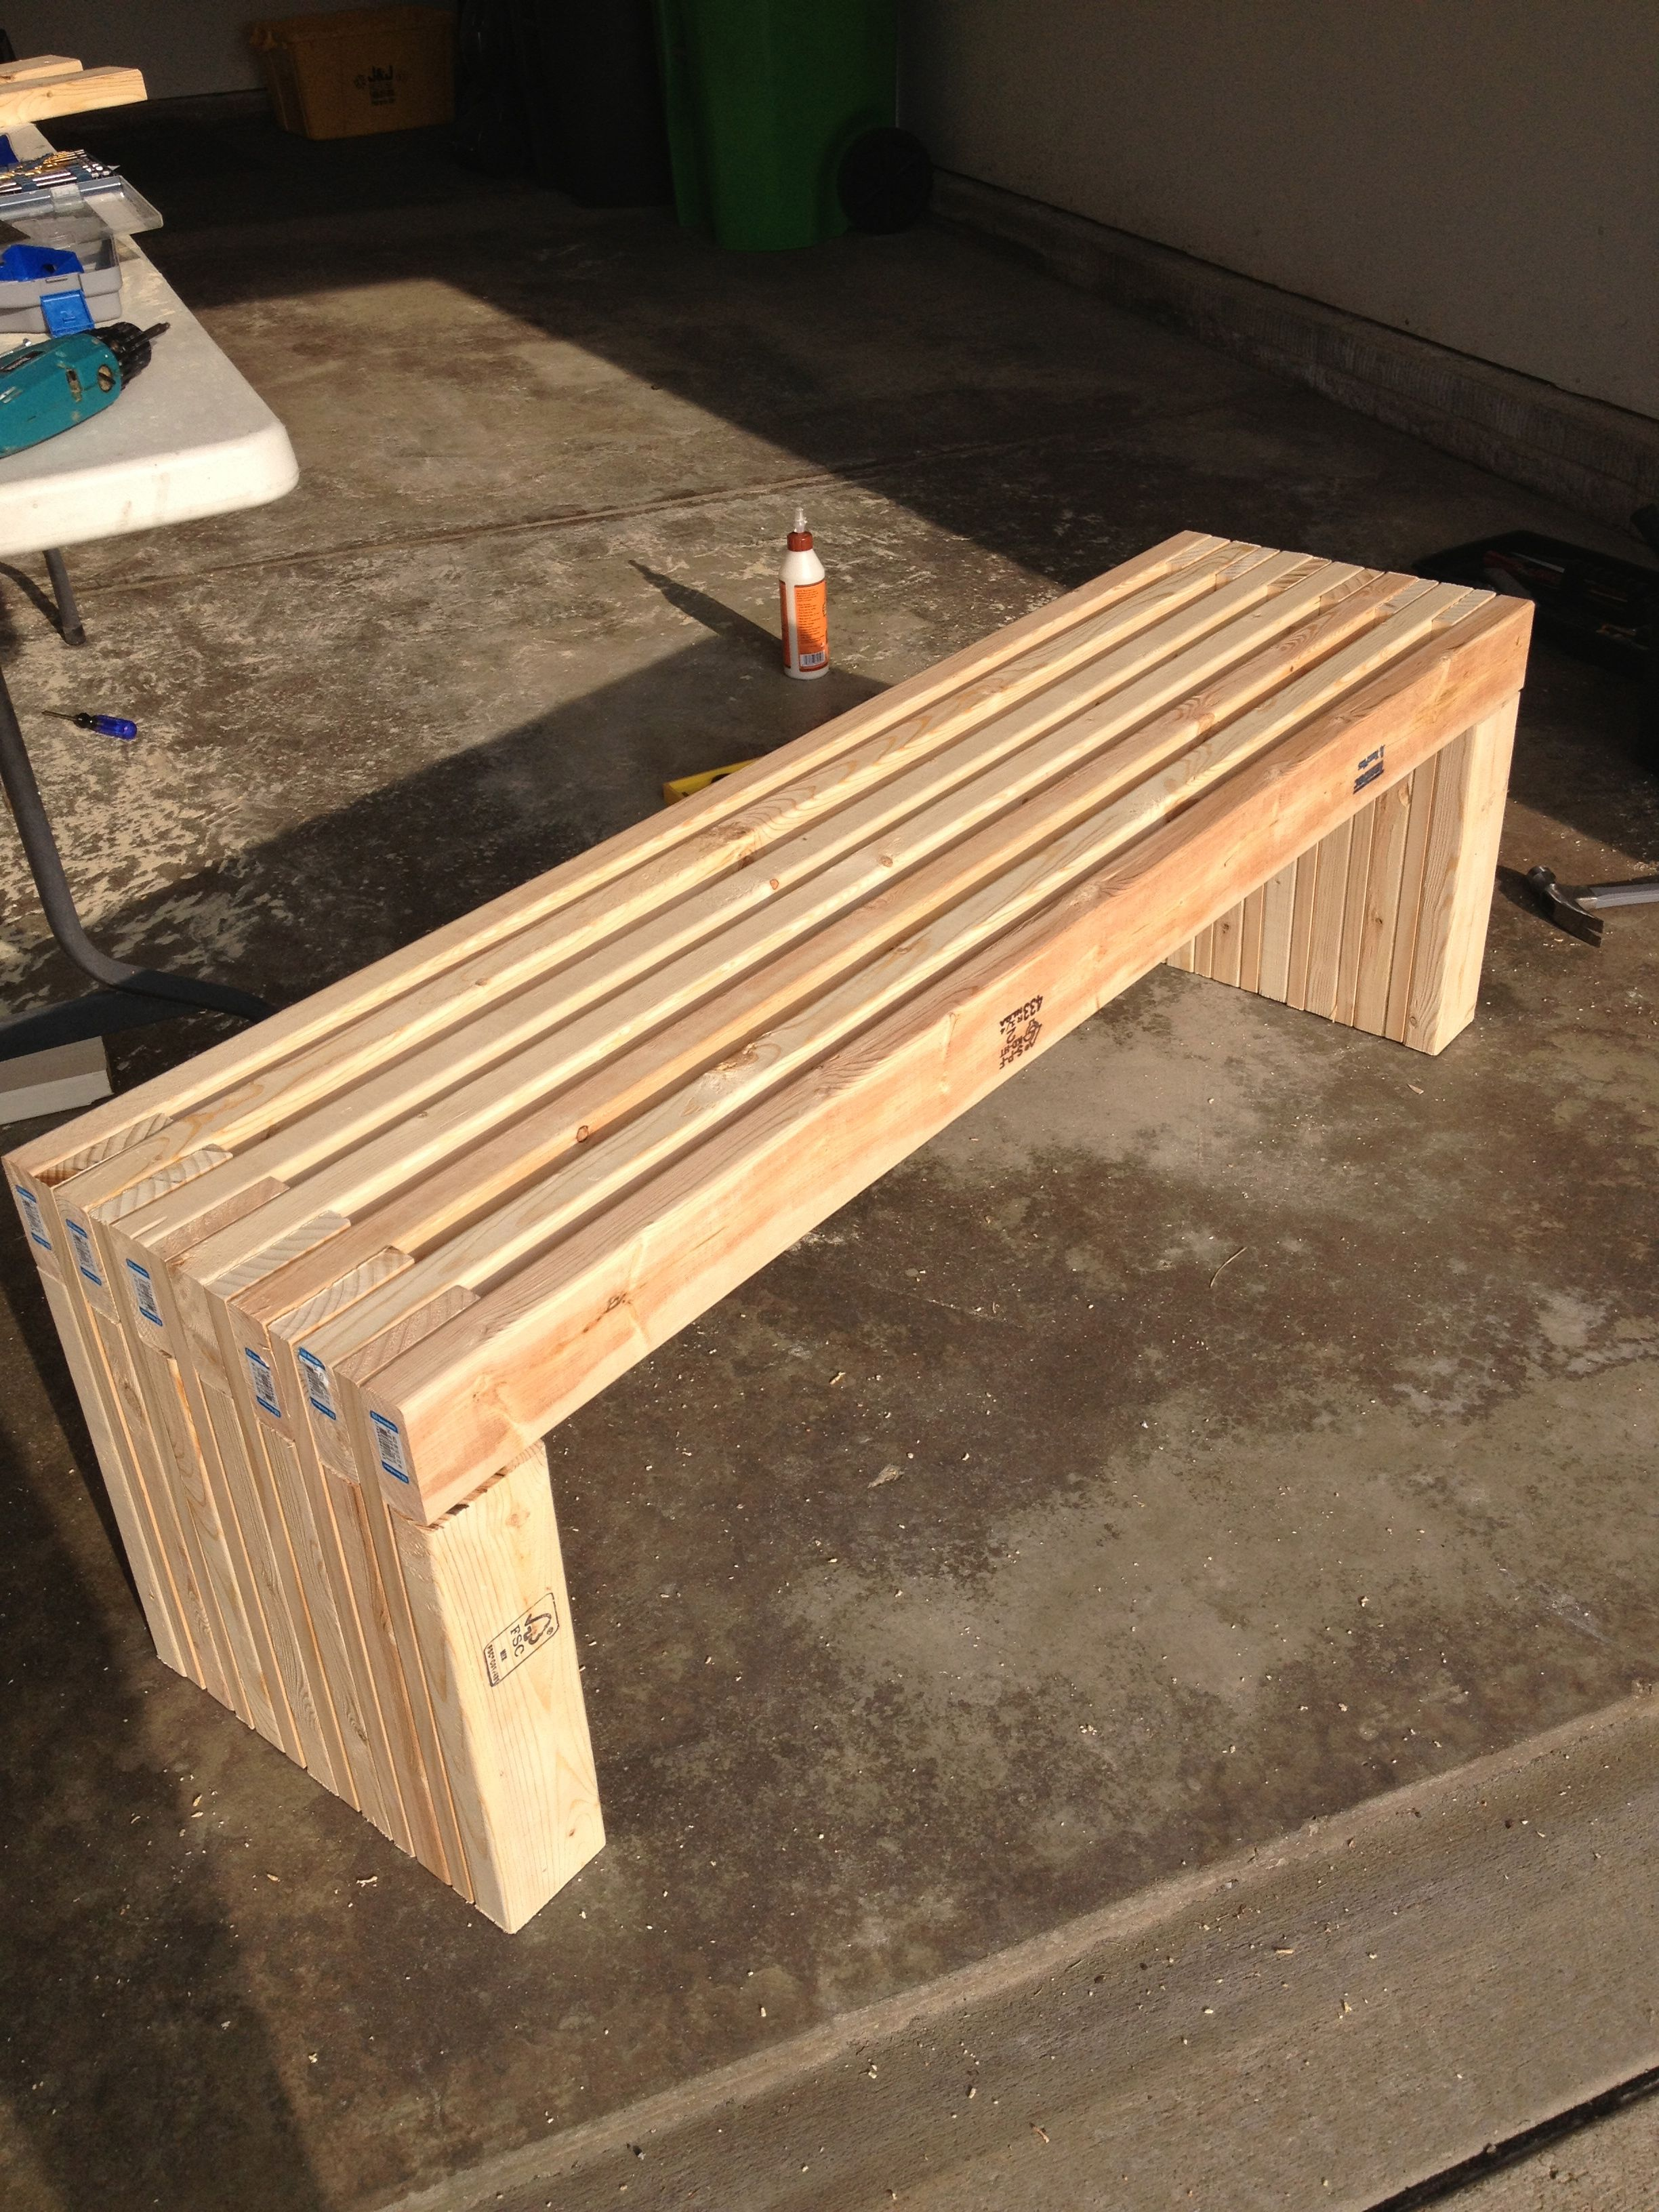 Find this pin and more on backyard kitchen marvelous wooden bench designed using easy